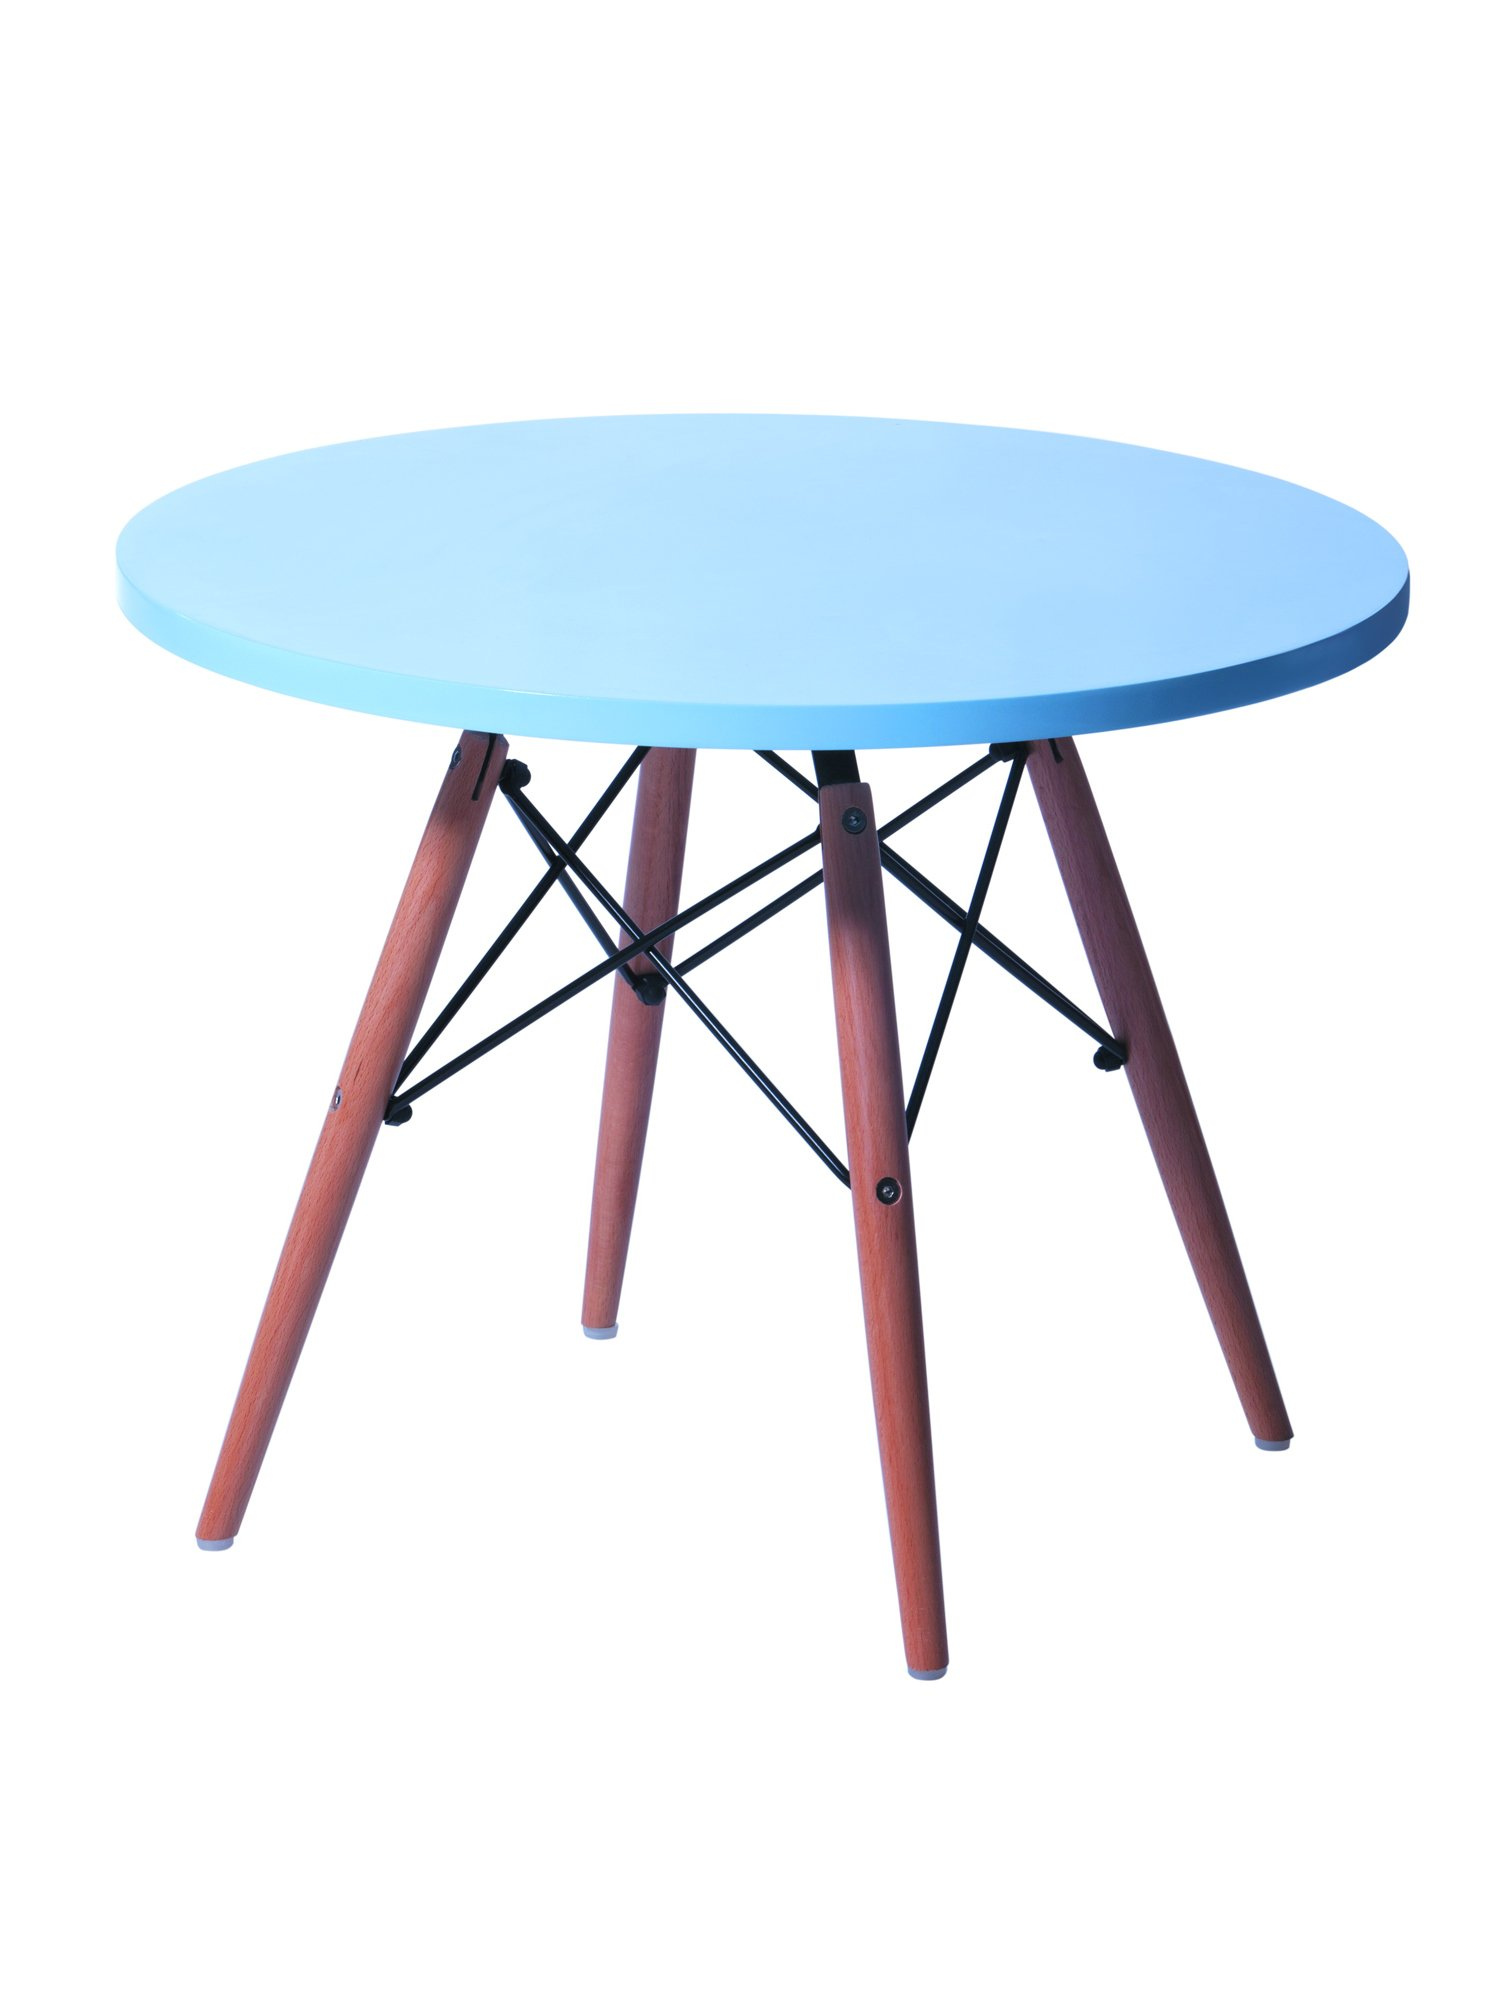 CSP Events KPWT-500-BL Eame style kids Table Black, 18.5'' Height, 24'' Width, 24'' Length, Blue